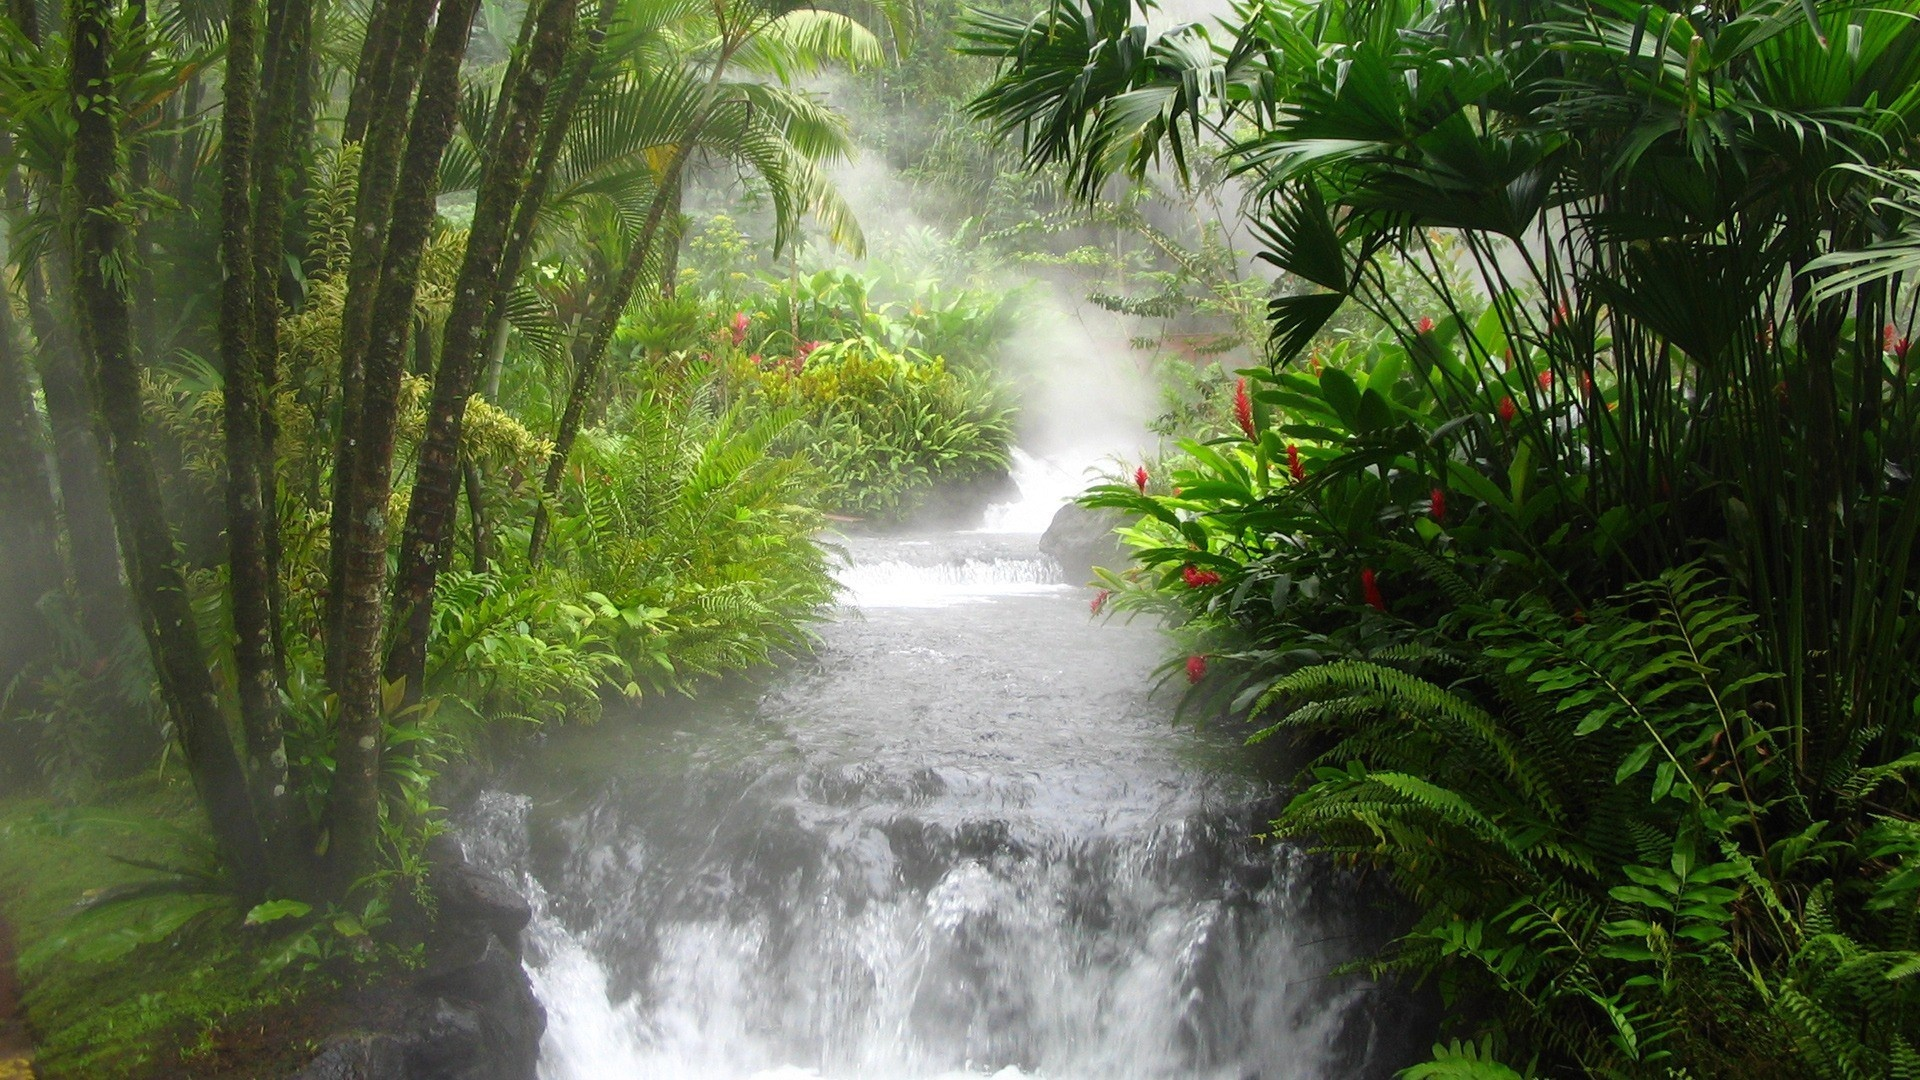 Download tropical rainforest waterfall wallpaper 1920x1080 voltagebd Image collections